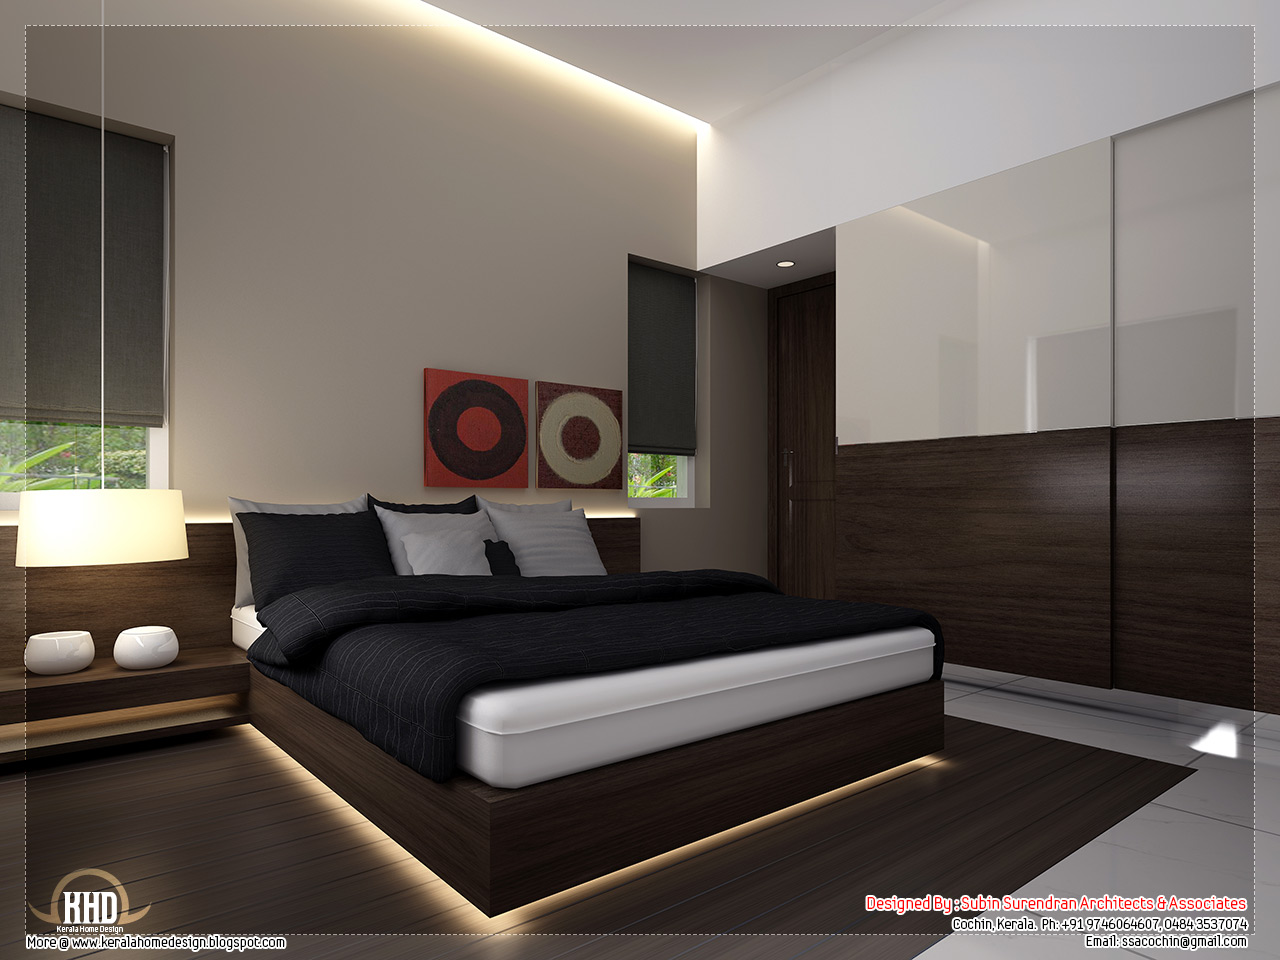 Beautiful home interior designs kerala homes for Interior design images bedroom